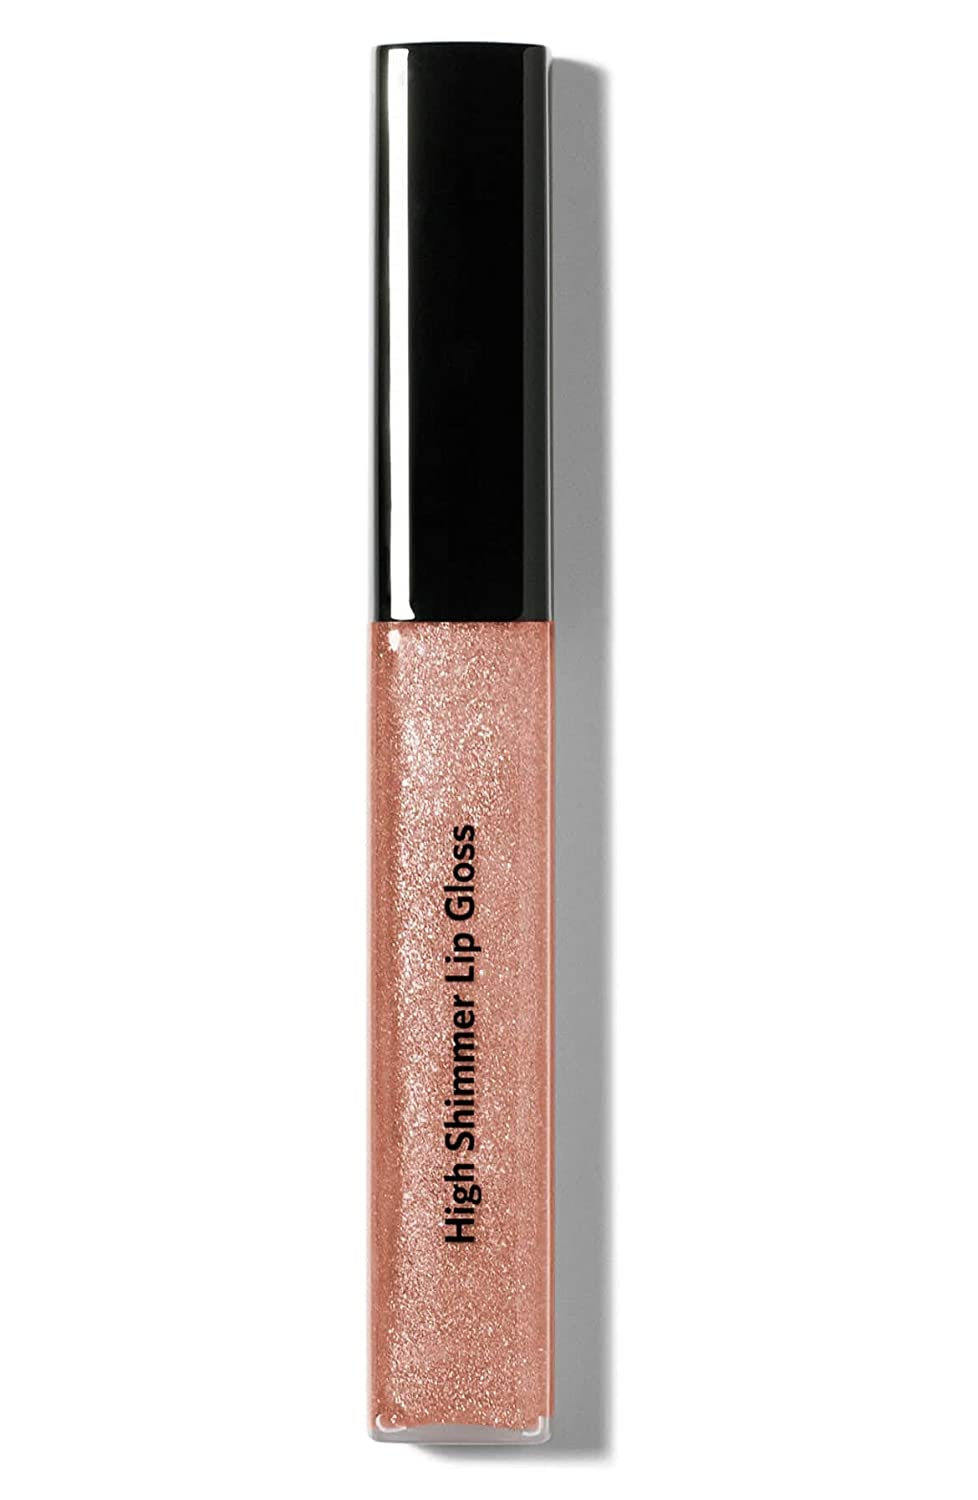 Bobbi Brown High Shimmer Lip Gloss Bare Sparkle 15 for Women, 0.24 Ounce